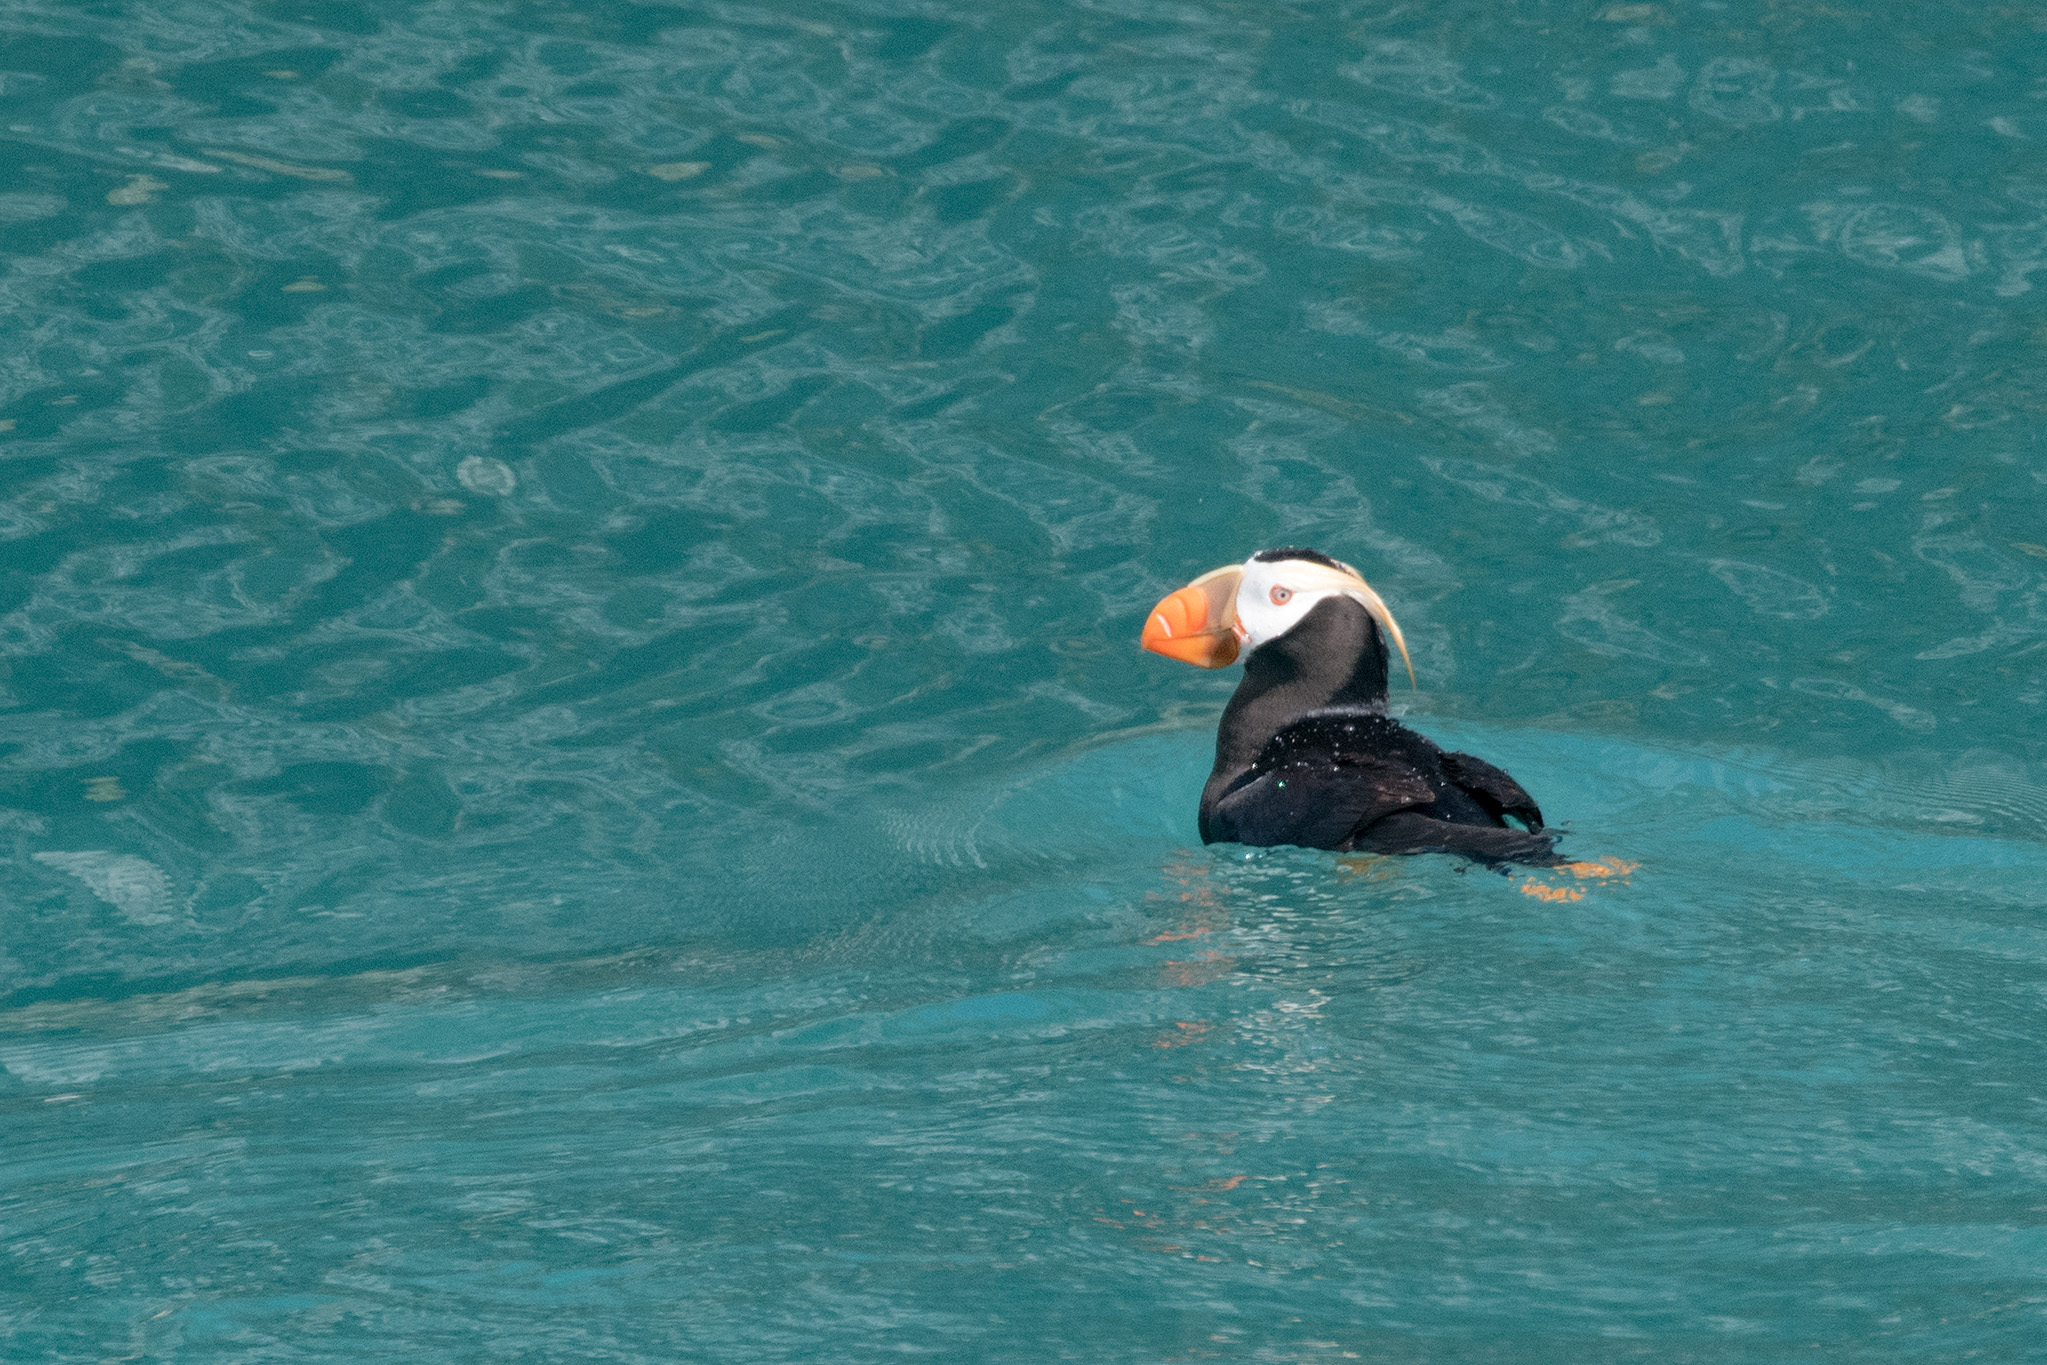 A tufted puffin